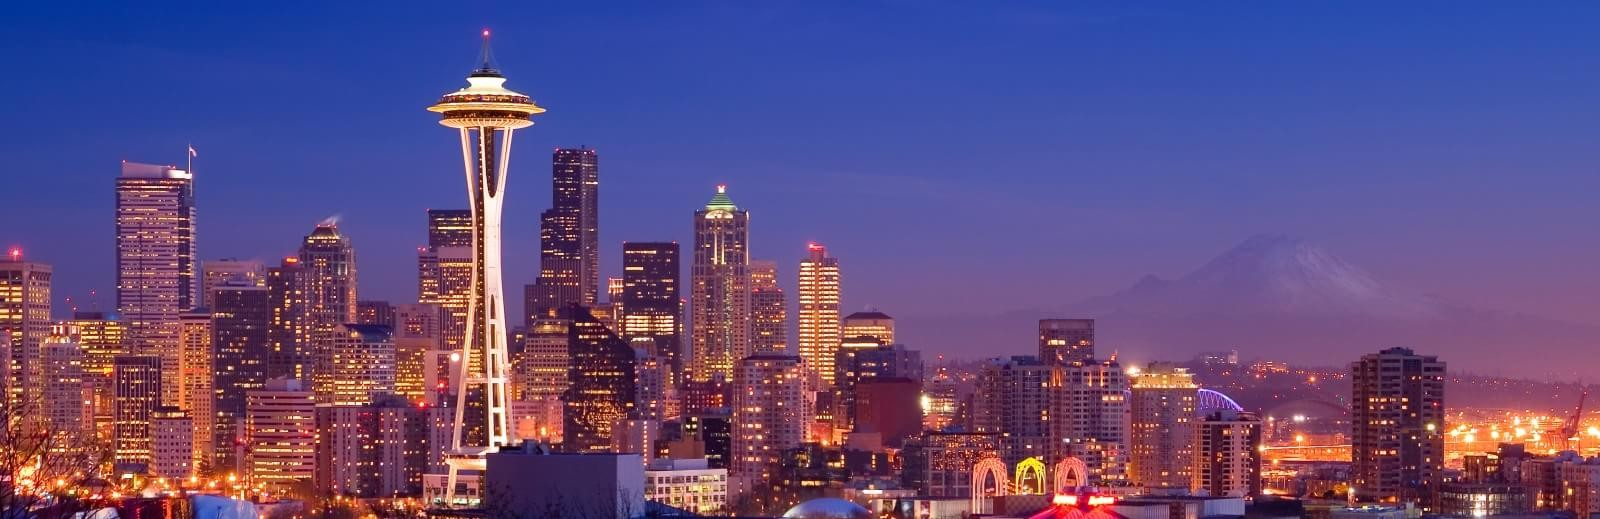 experience-seattle-united-states-charlot